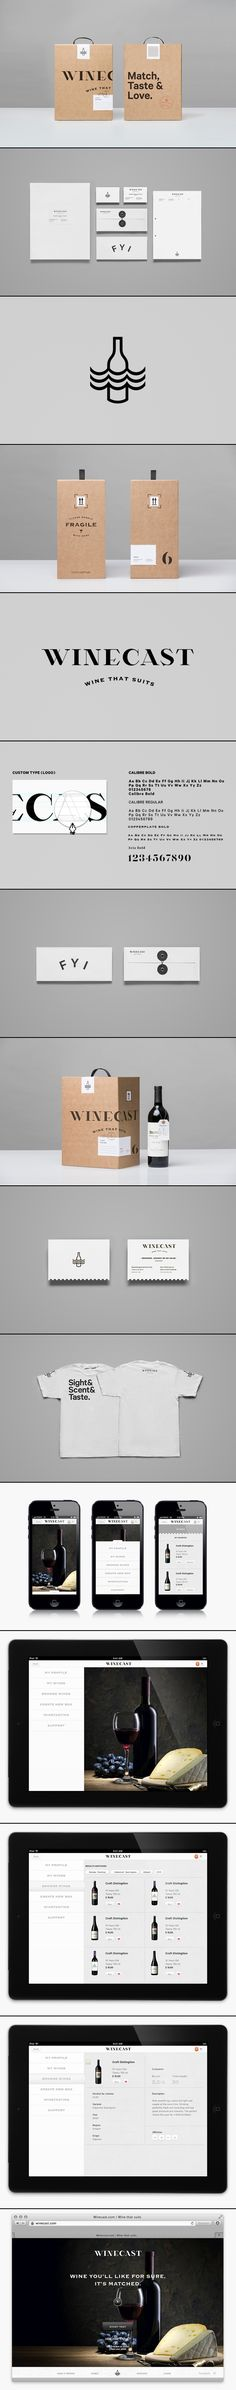 Winecast Curated by Transition Marketing Services | Okanagan Small Business Branding & Marketing Solutions http://www.transitionmarketing.ca